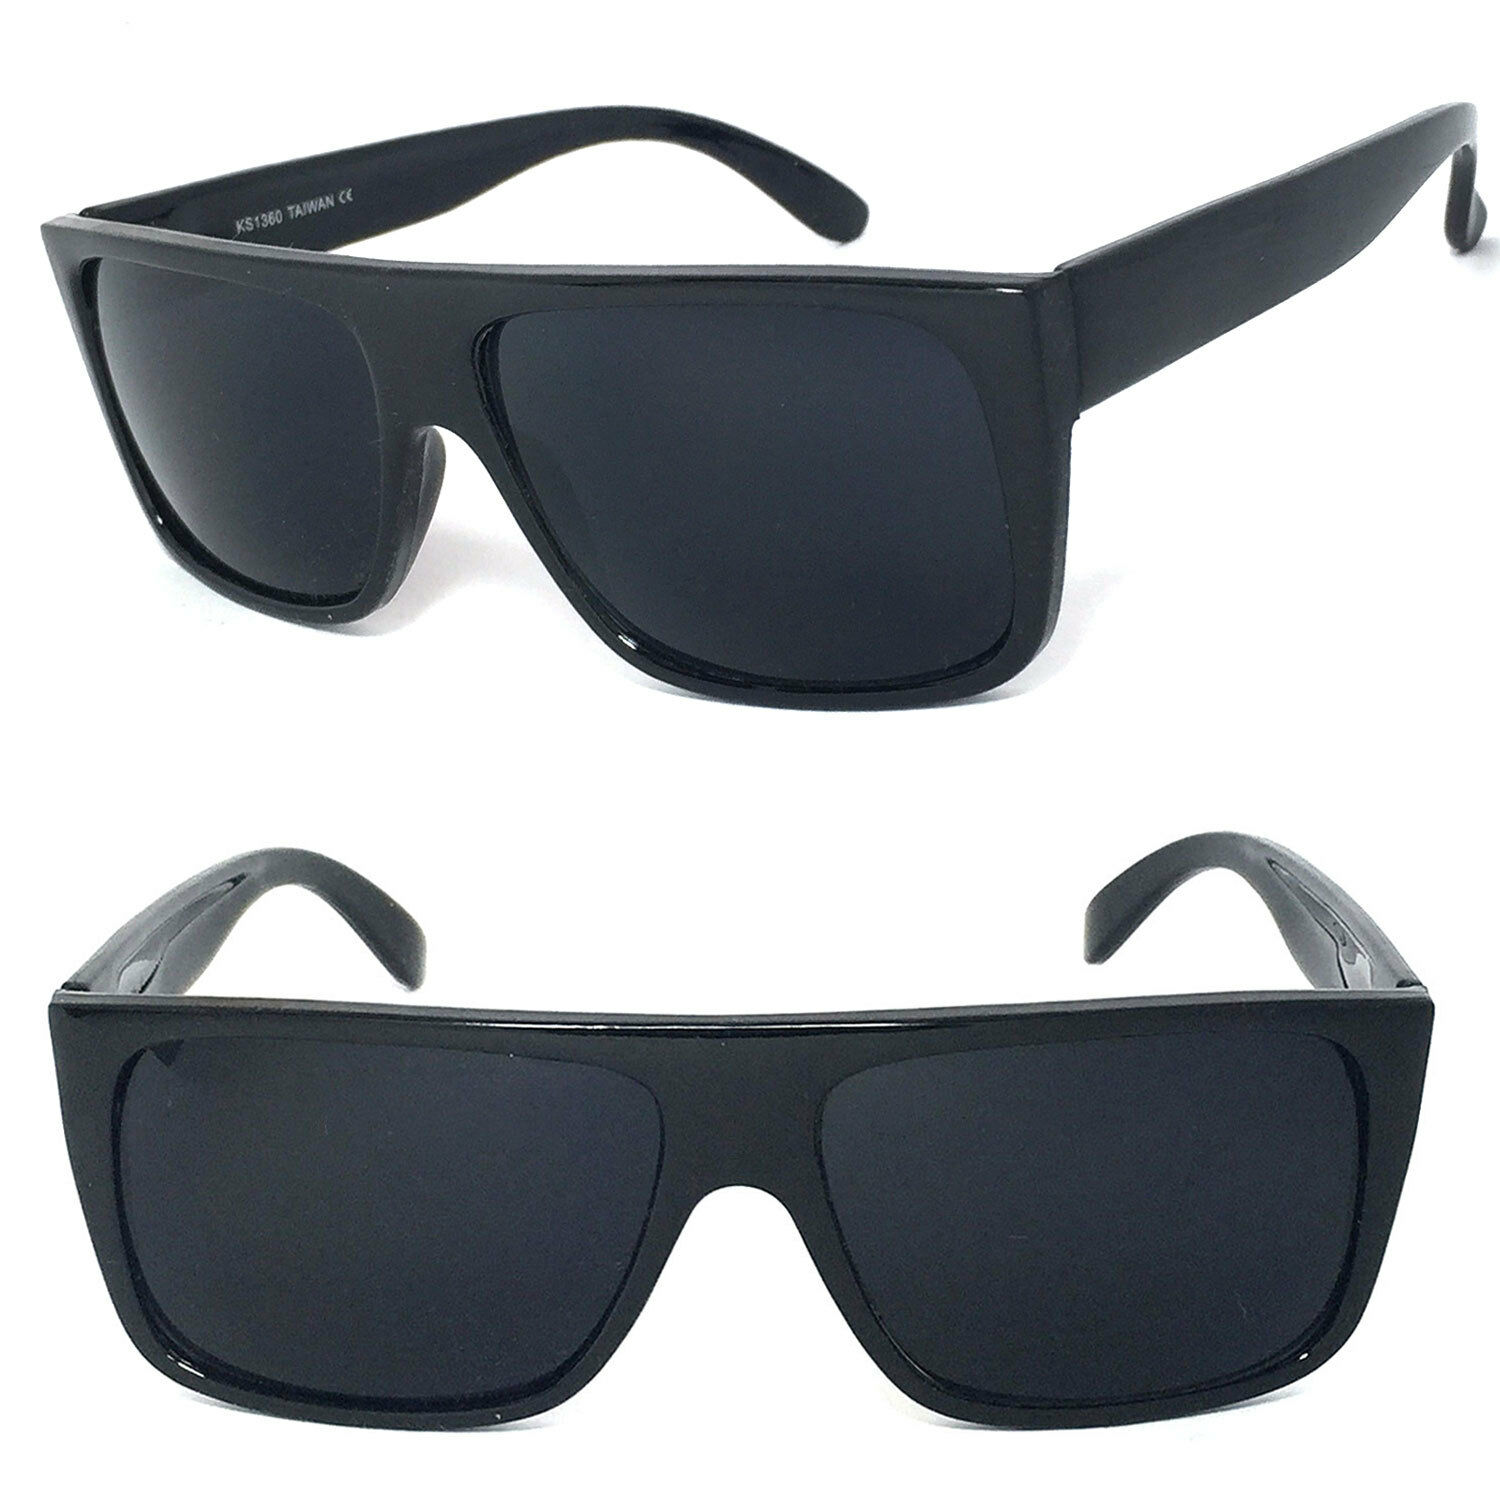 91c5733b9c4 Details about Classic Old School Eazy E Flat GANGSTER CHOLO Sunglasses  Super Dark UV Protect